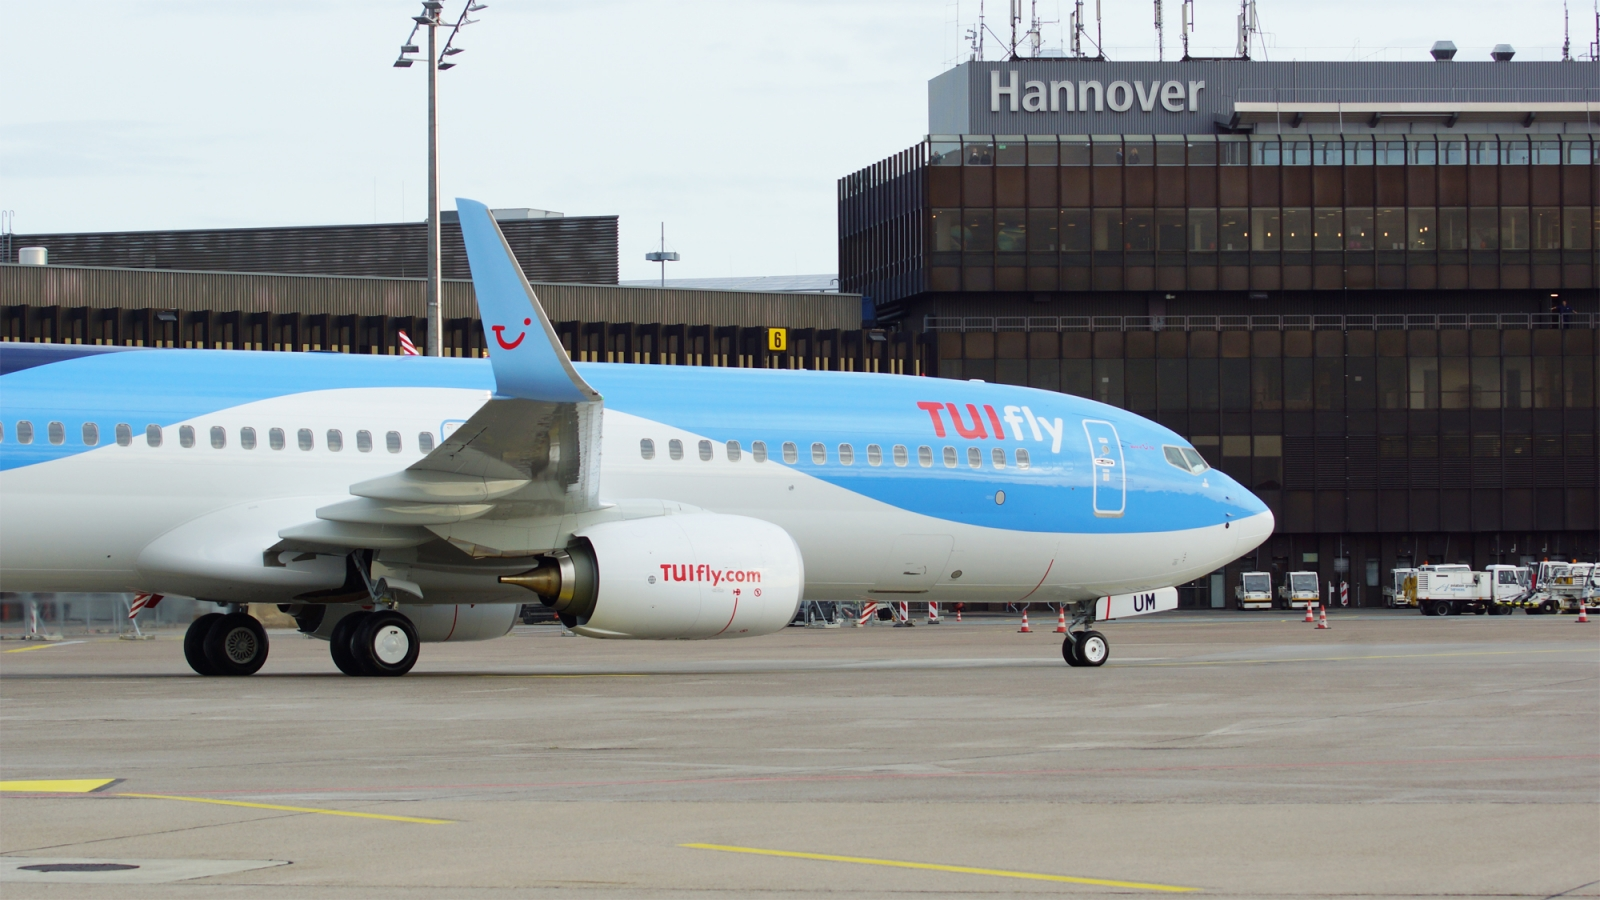 Plans shelved for TUI and Etihad joint venture